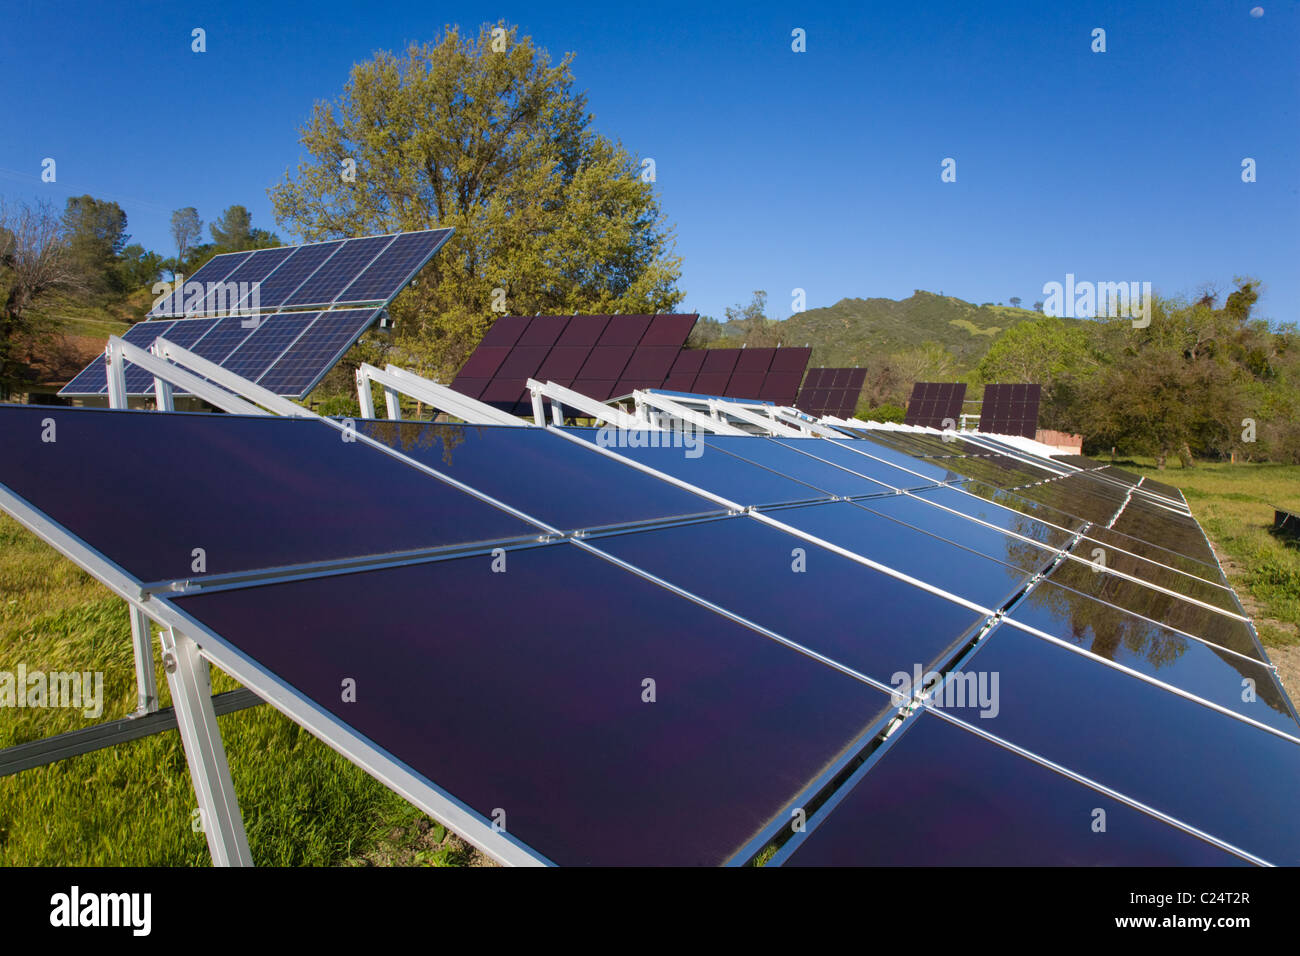 SOLAR PANEL array at a Coastal Range cattle ranch in central CALIFORNIA - Stock Image